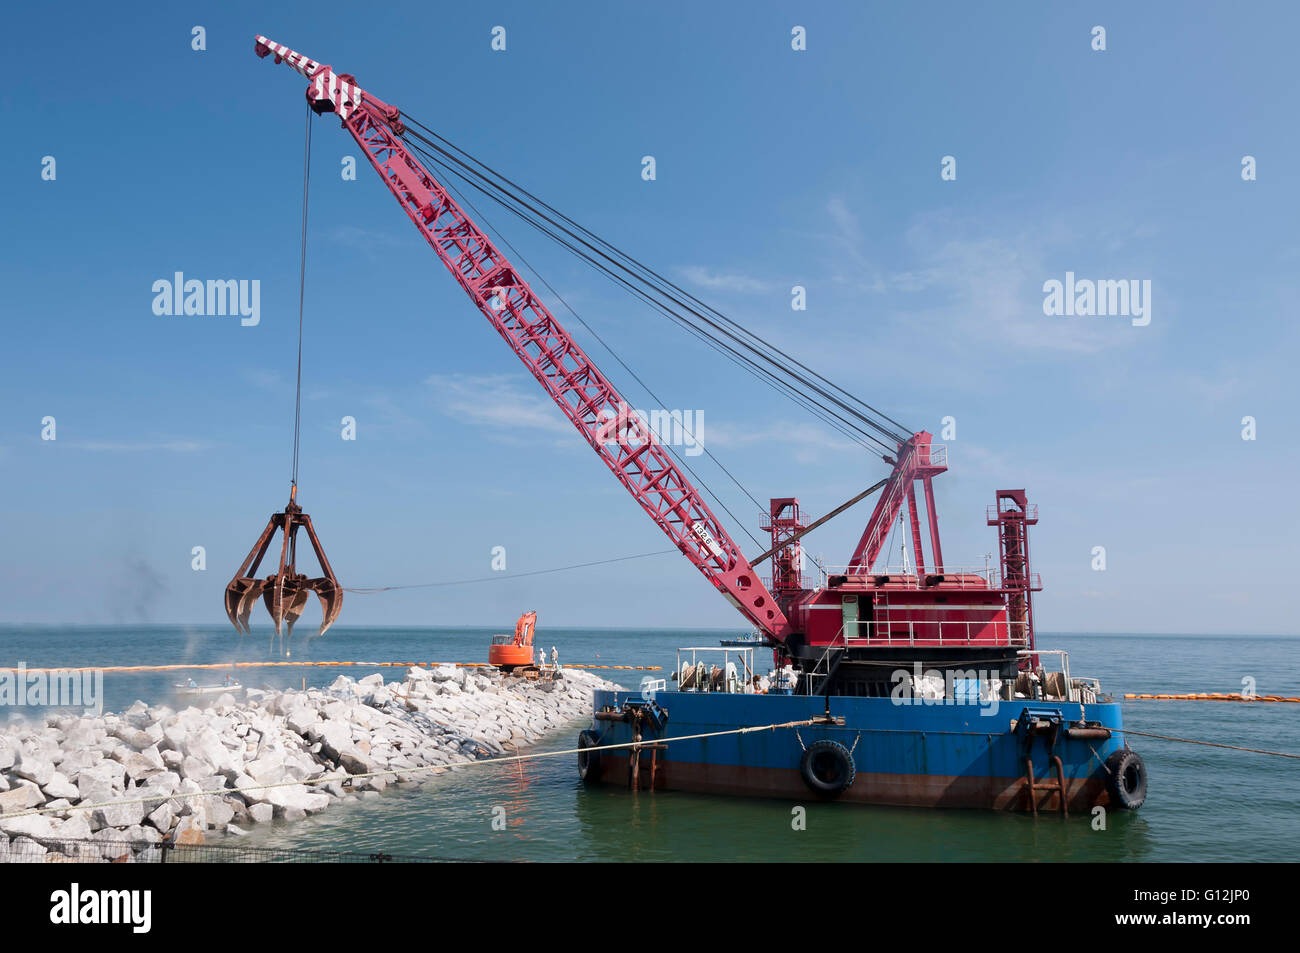 Industrial floating sea crane for carrying the rocks and stones - Stock Image